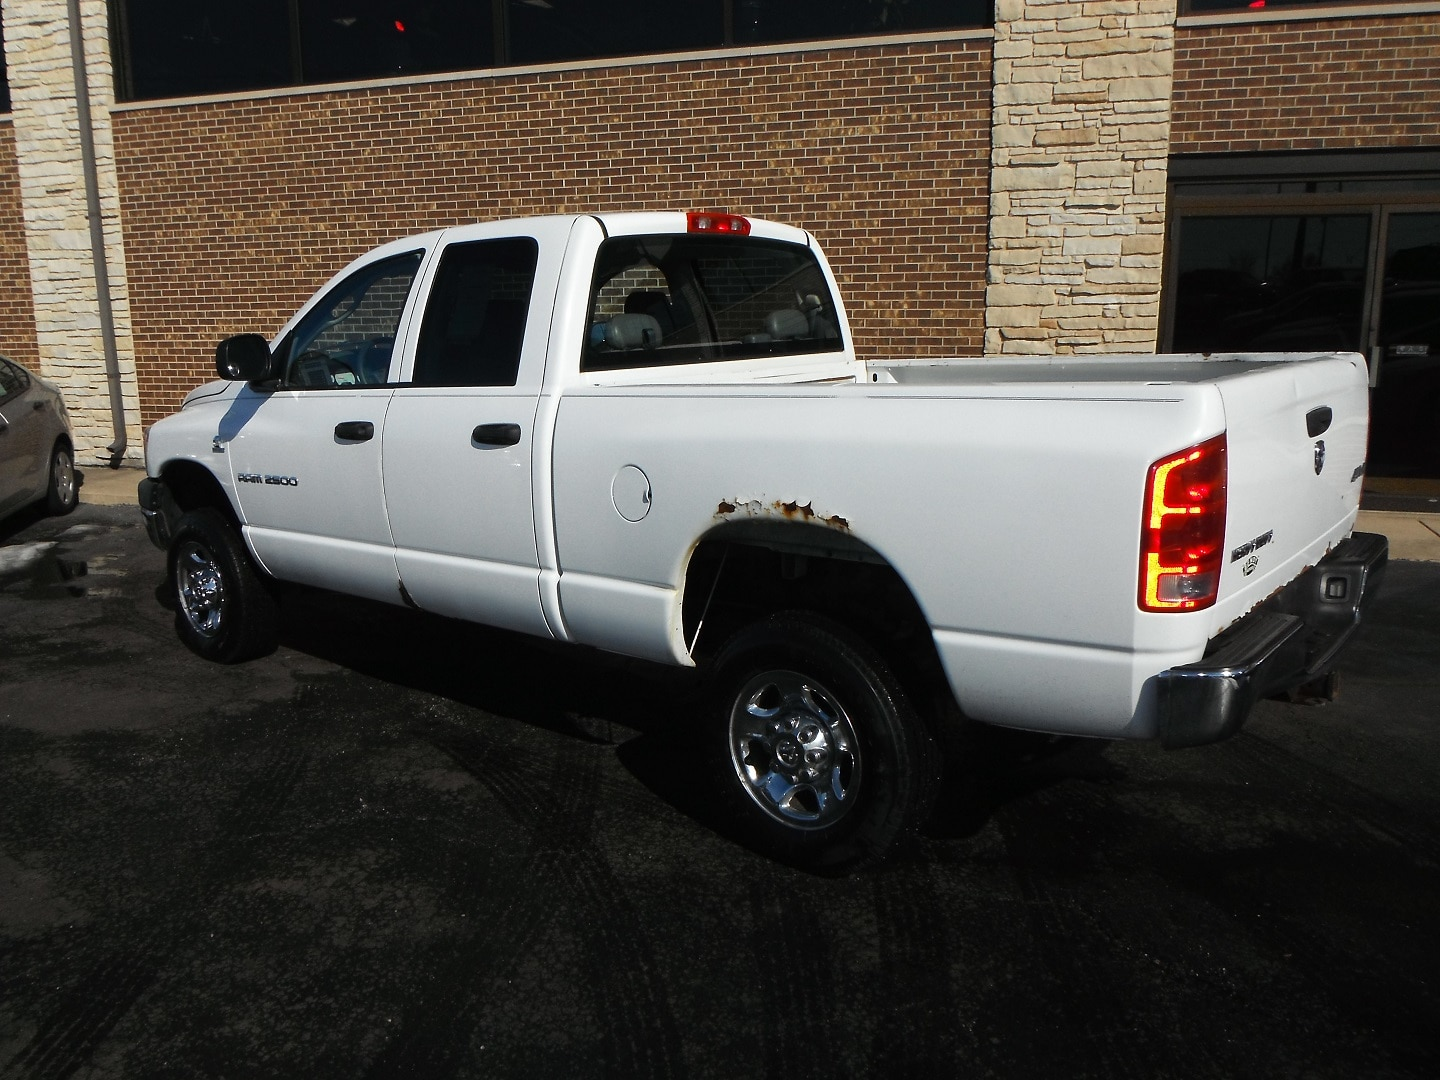 used 2006 dodge ram 2500 st 4x4 cummins turbo diesel for sale woodstock il. Black Bedroom Furniture Sets. Home Design Ideas